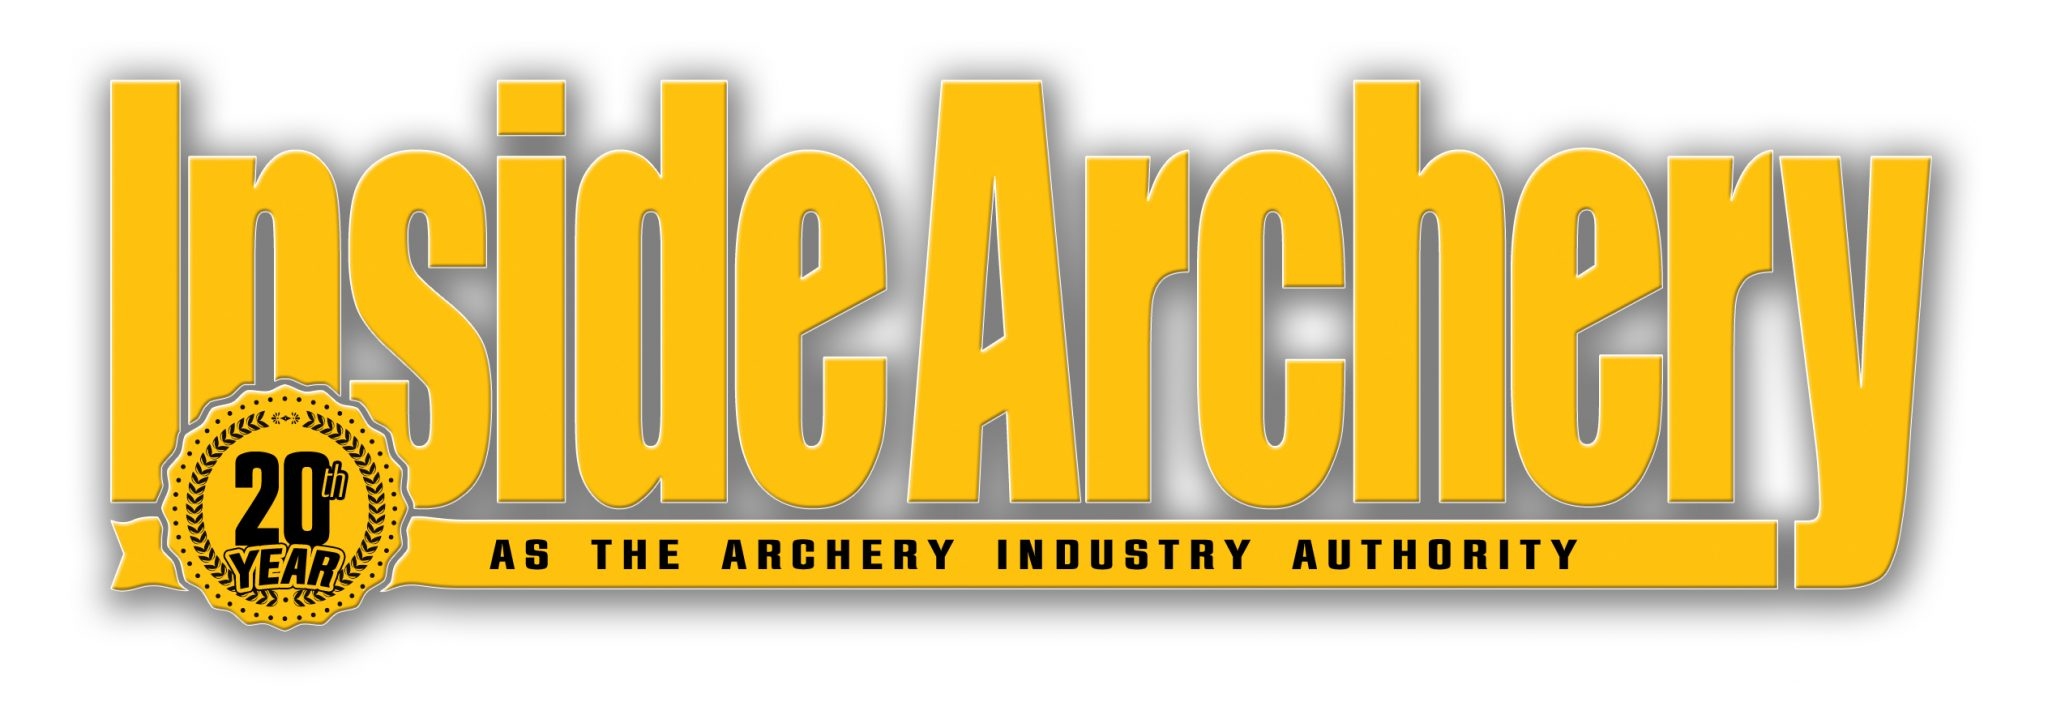 Archery Gear, News, and Videos